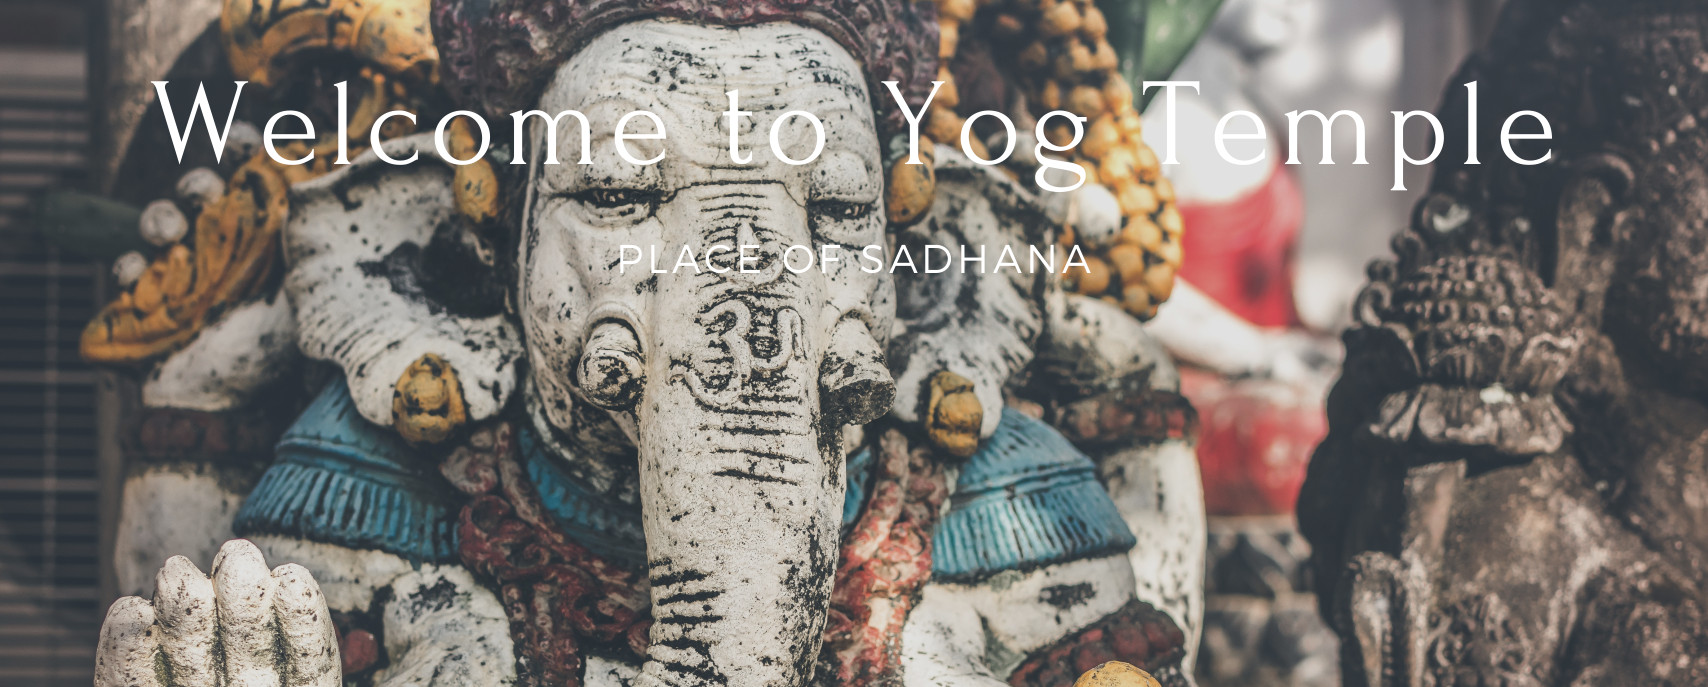 Become a Yoga Teacher5 - Home